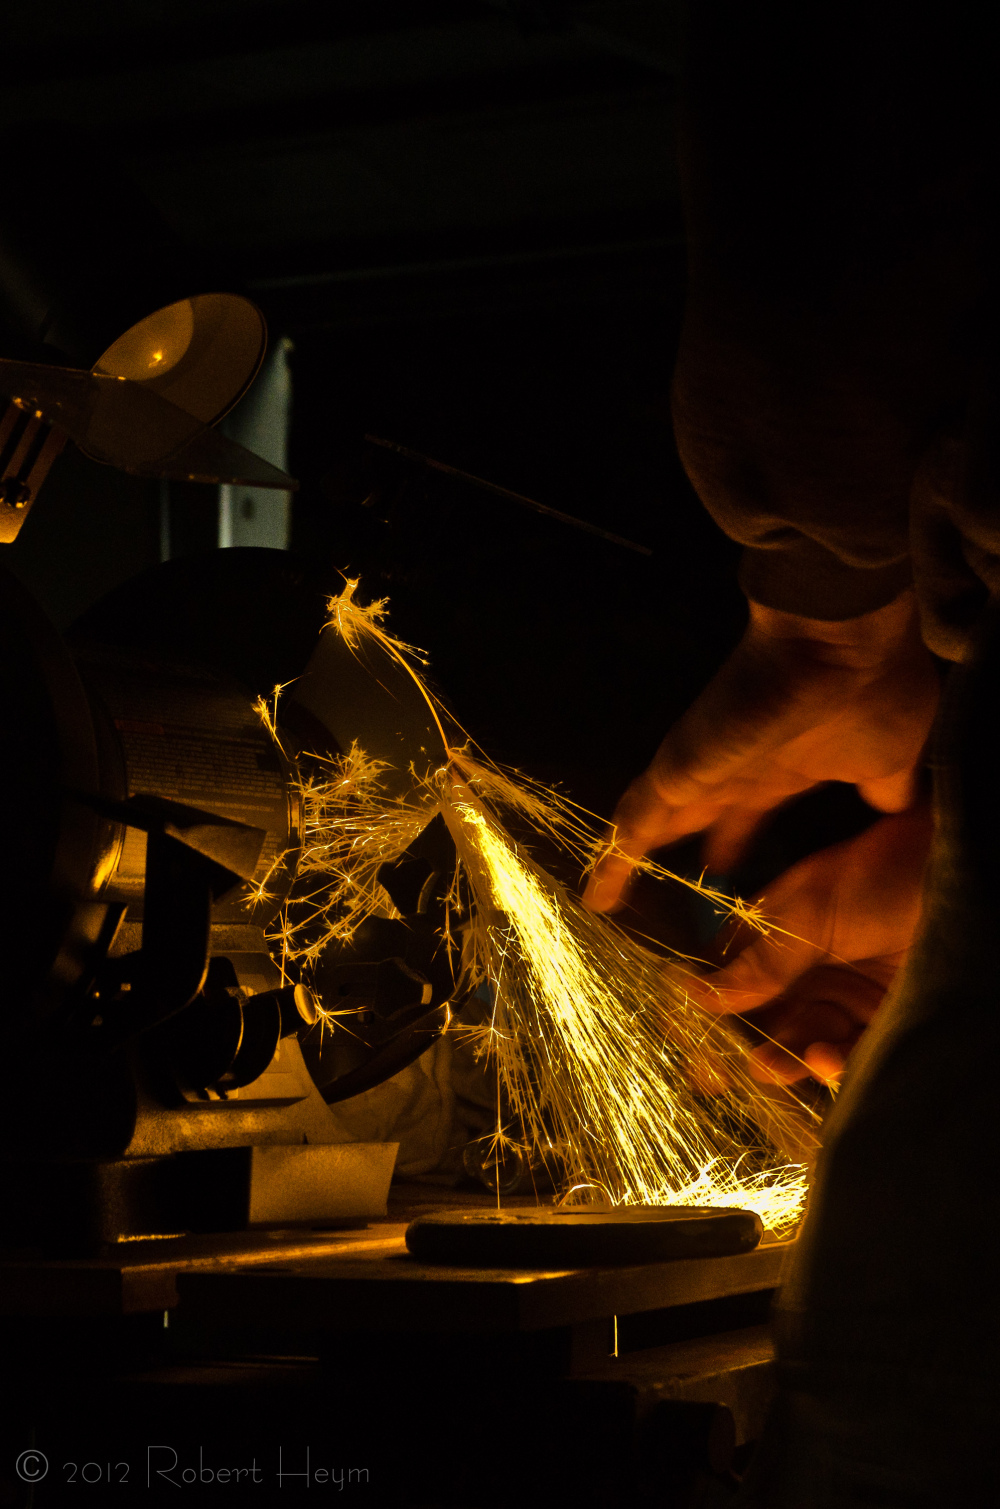 Sparks flying from a grinding wheel